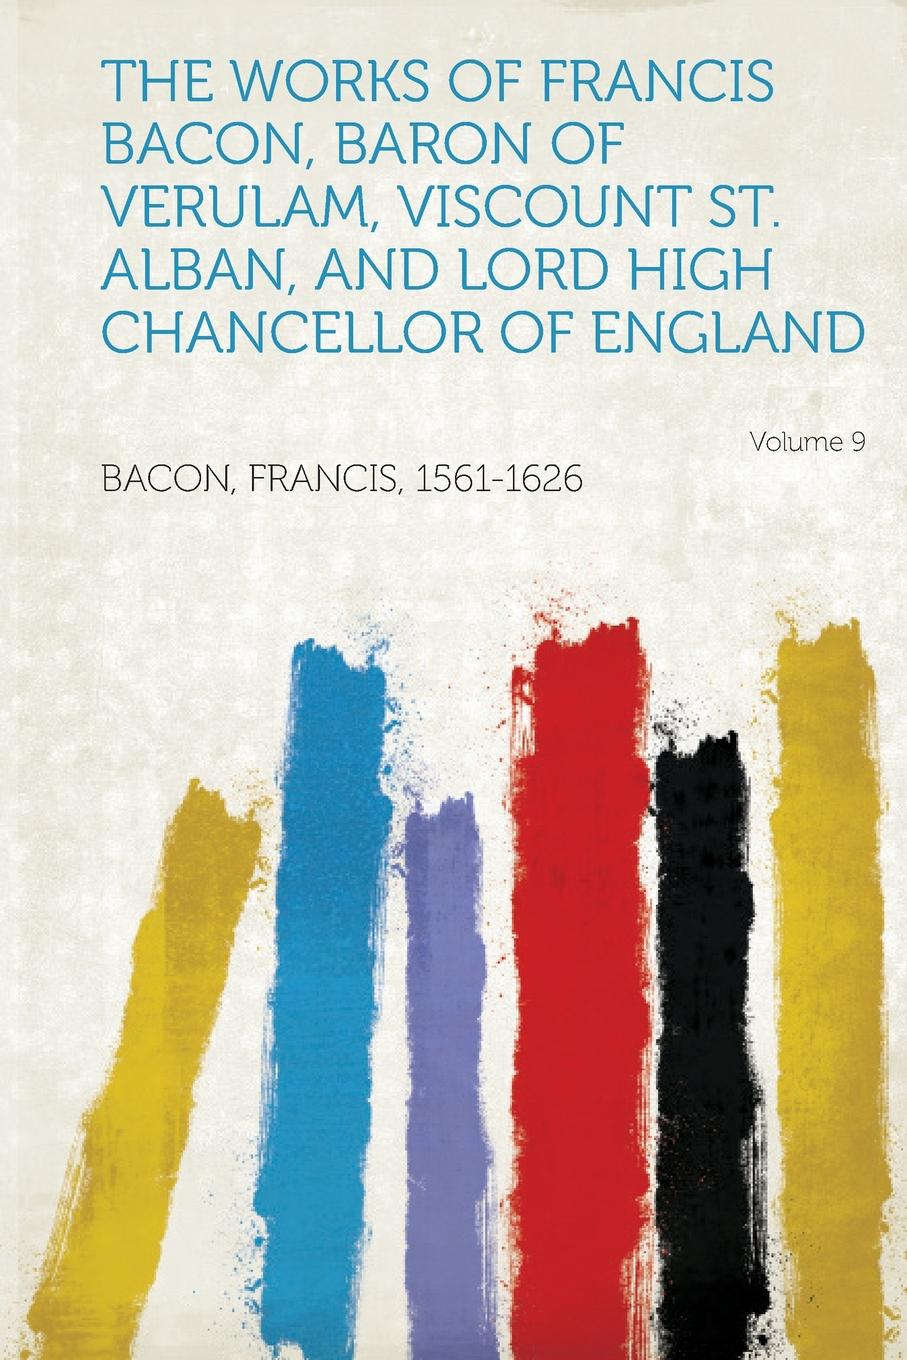 Francis Bacon The Works of Francis Bacon, Baron of Verulam, Viscount St. Alban, and Lord High Chancellor of England Volume 9 фрэнсис бэкон the works of francis bacon volume 11